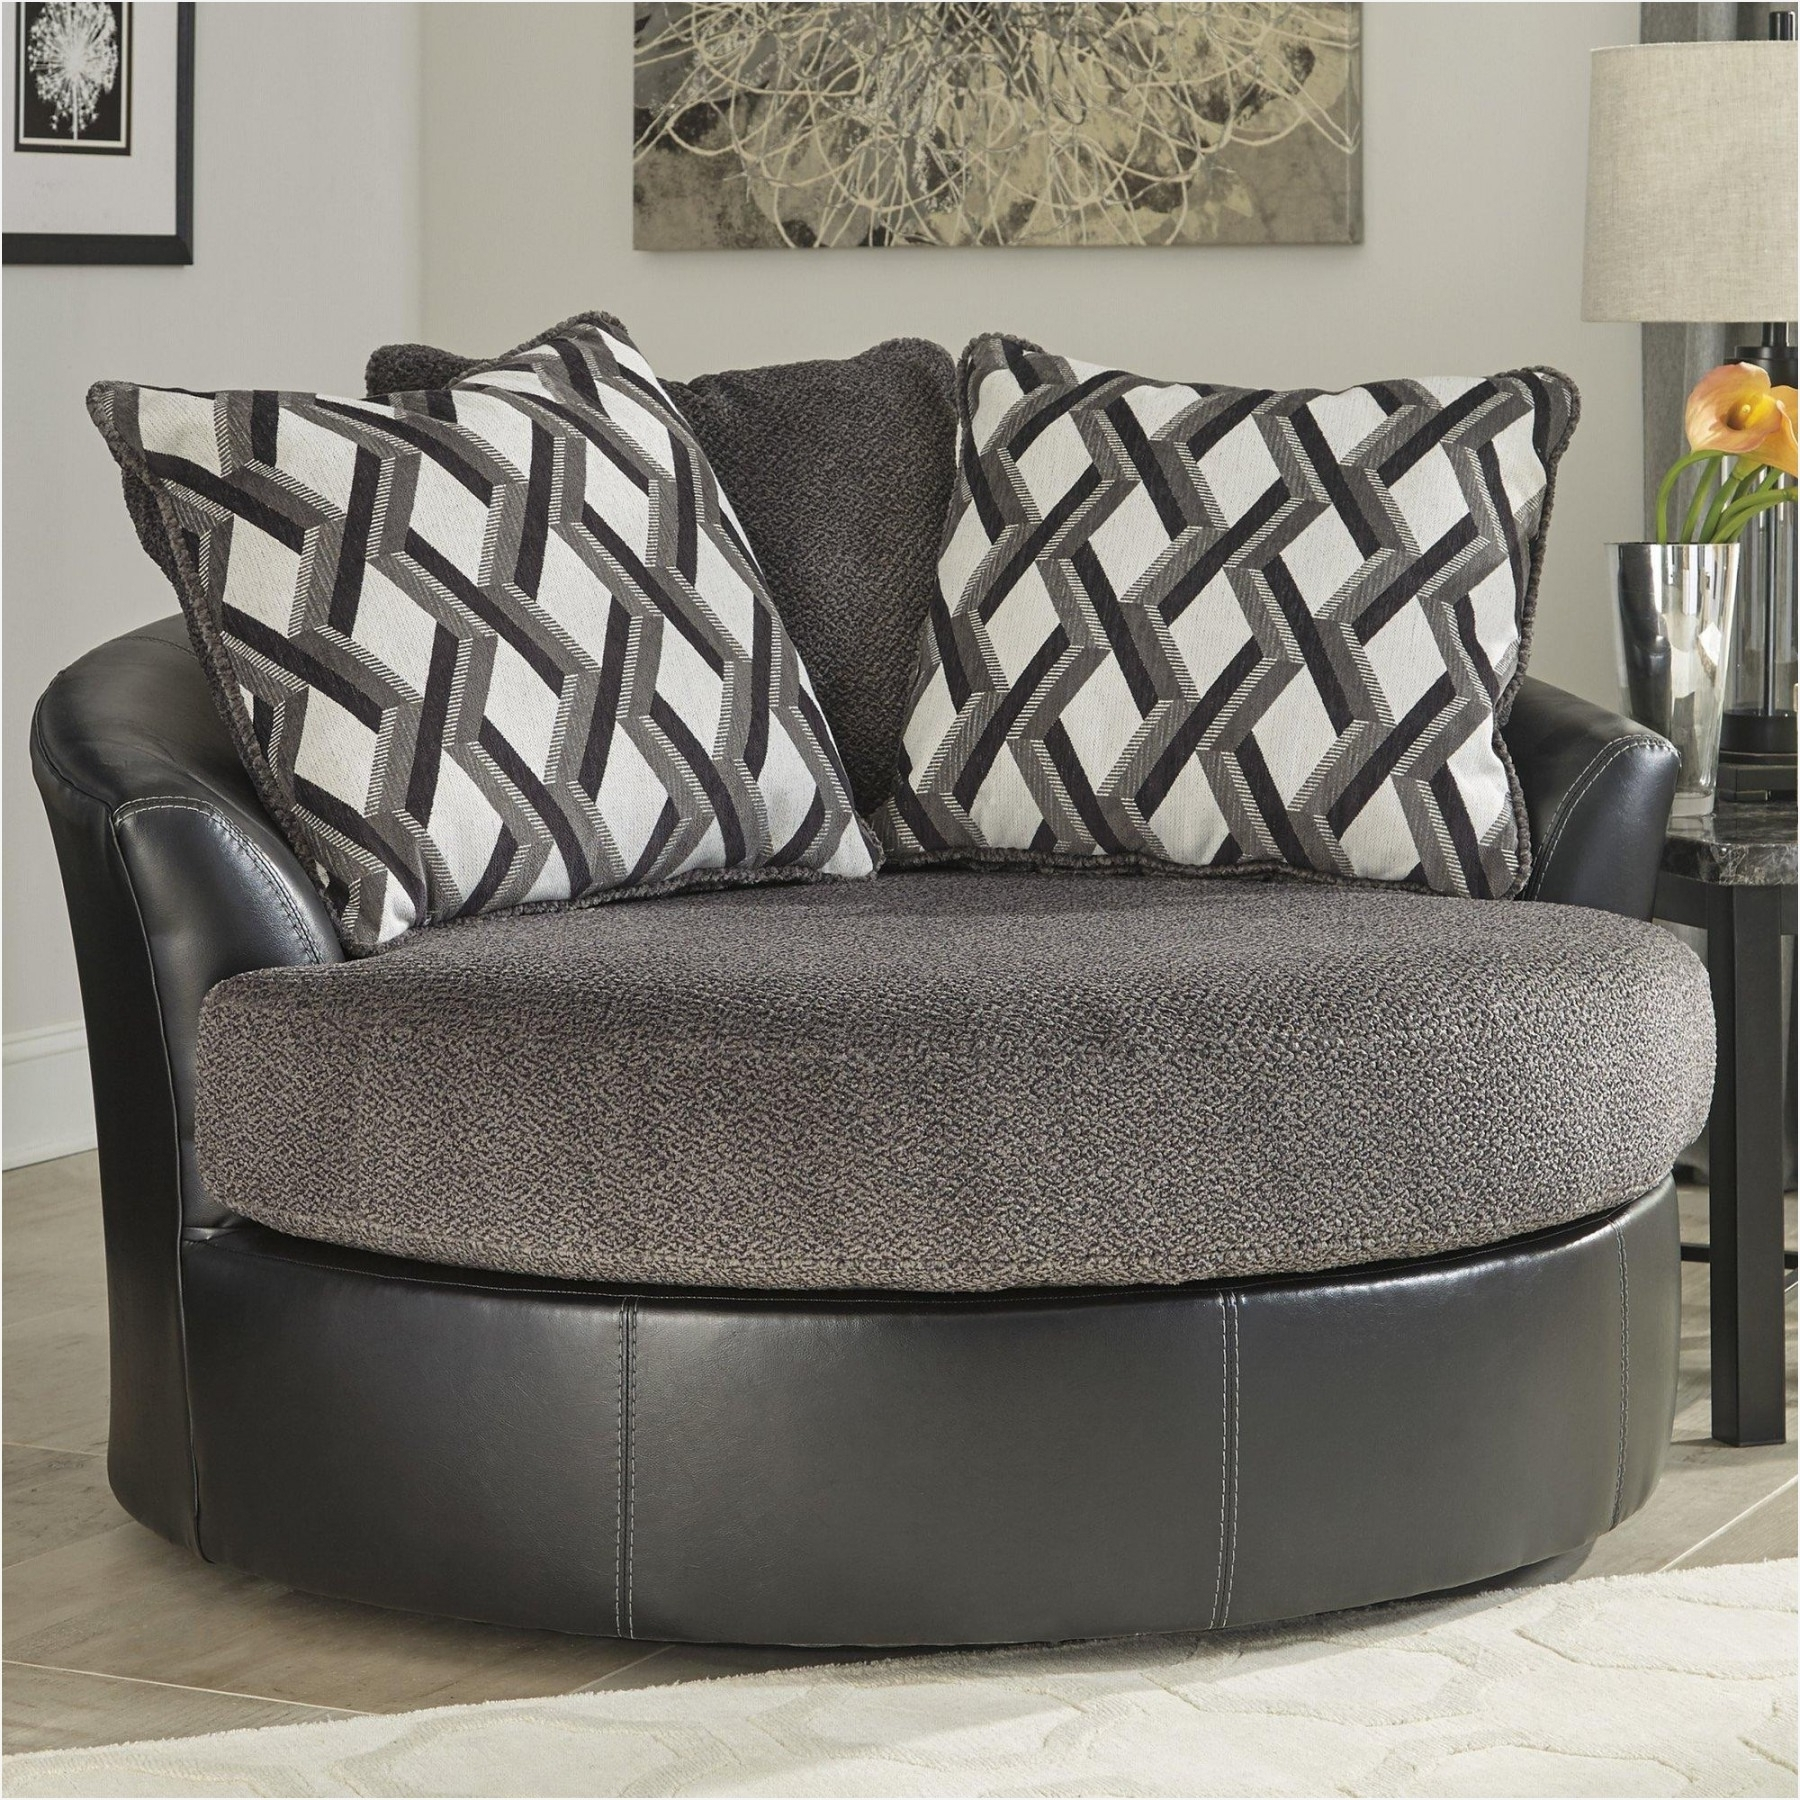 Current Inspirational Kohls Sofa Covers 17 Inspirational Kohl S Patio Chairs Inside Kohl's Patio Conversation Sets (View 14 of 20)